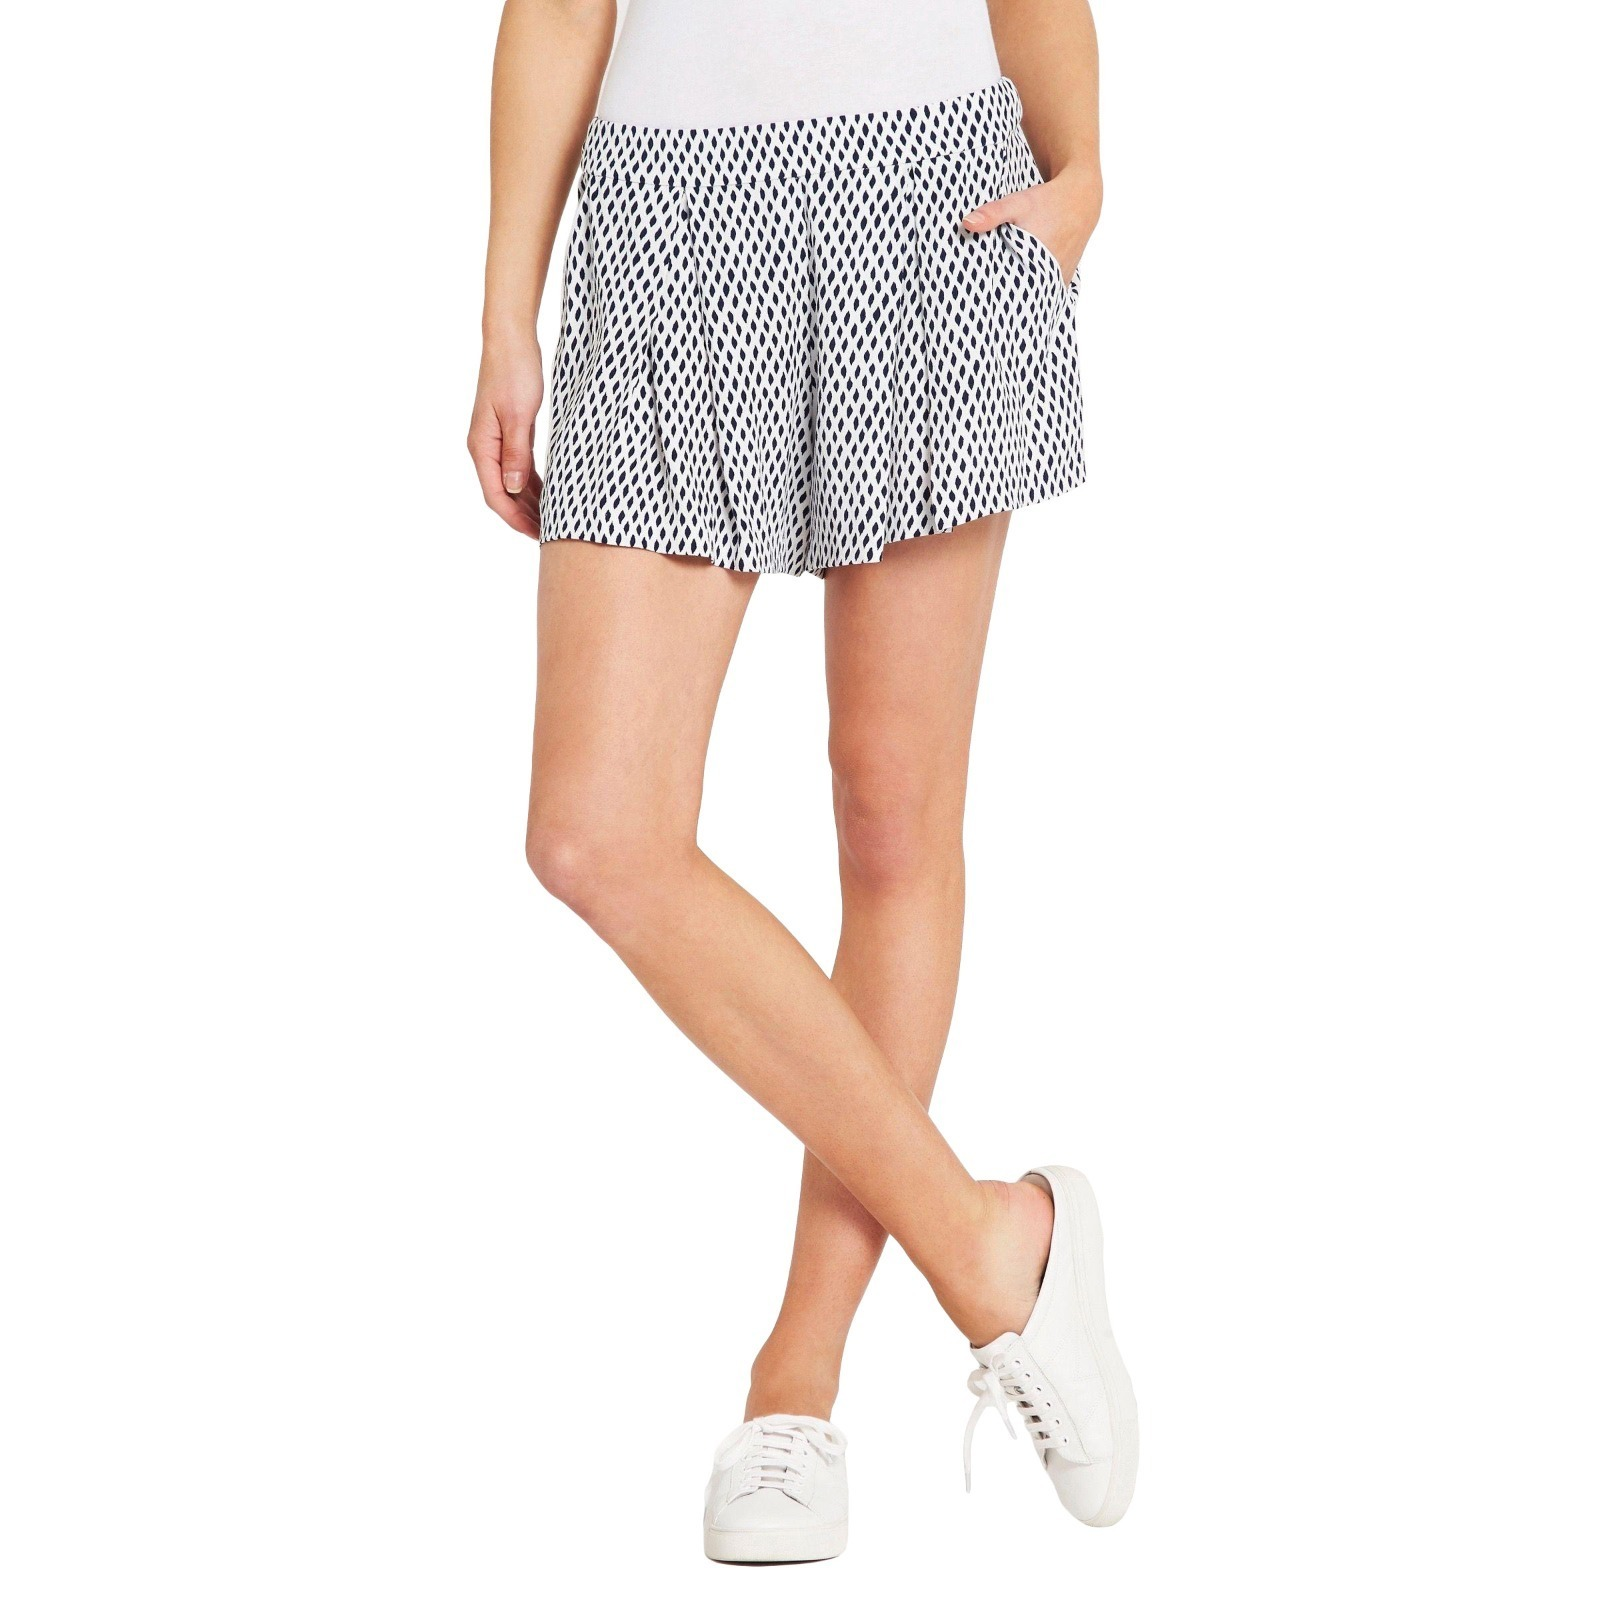 Buy: The Stardust Patterned Shorts Size 10